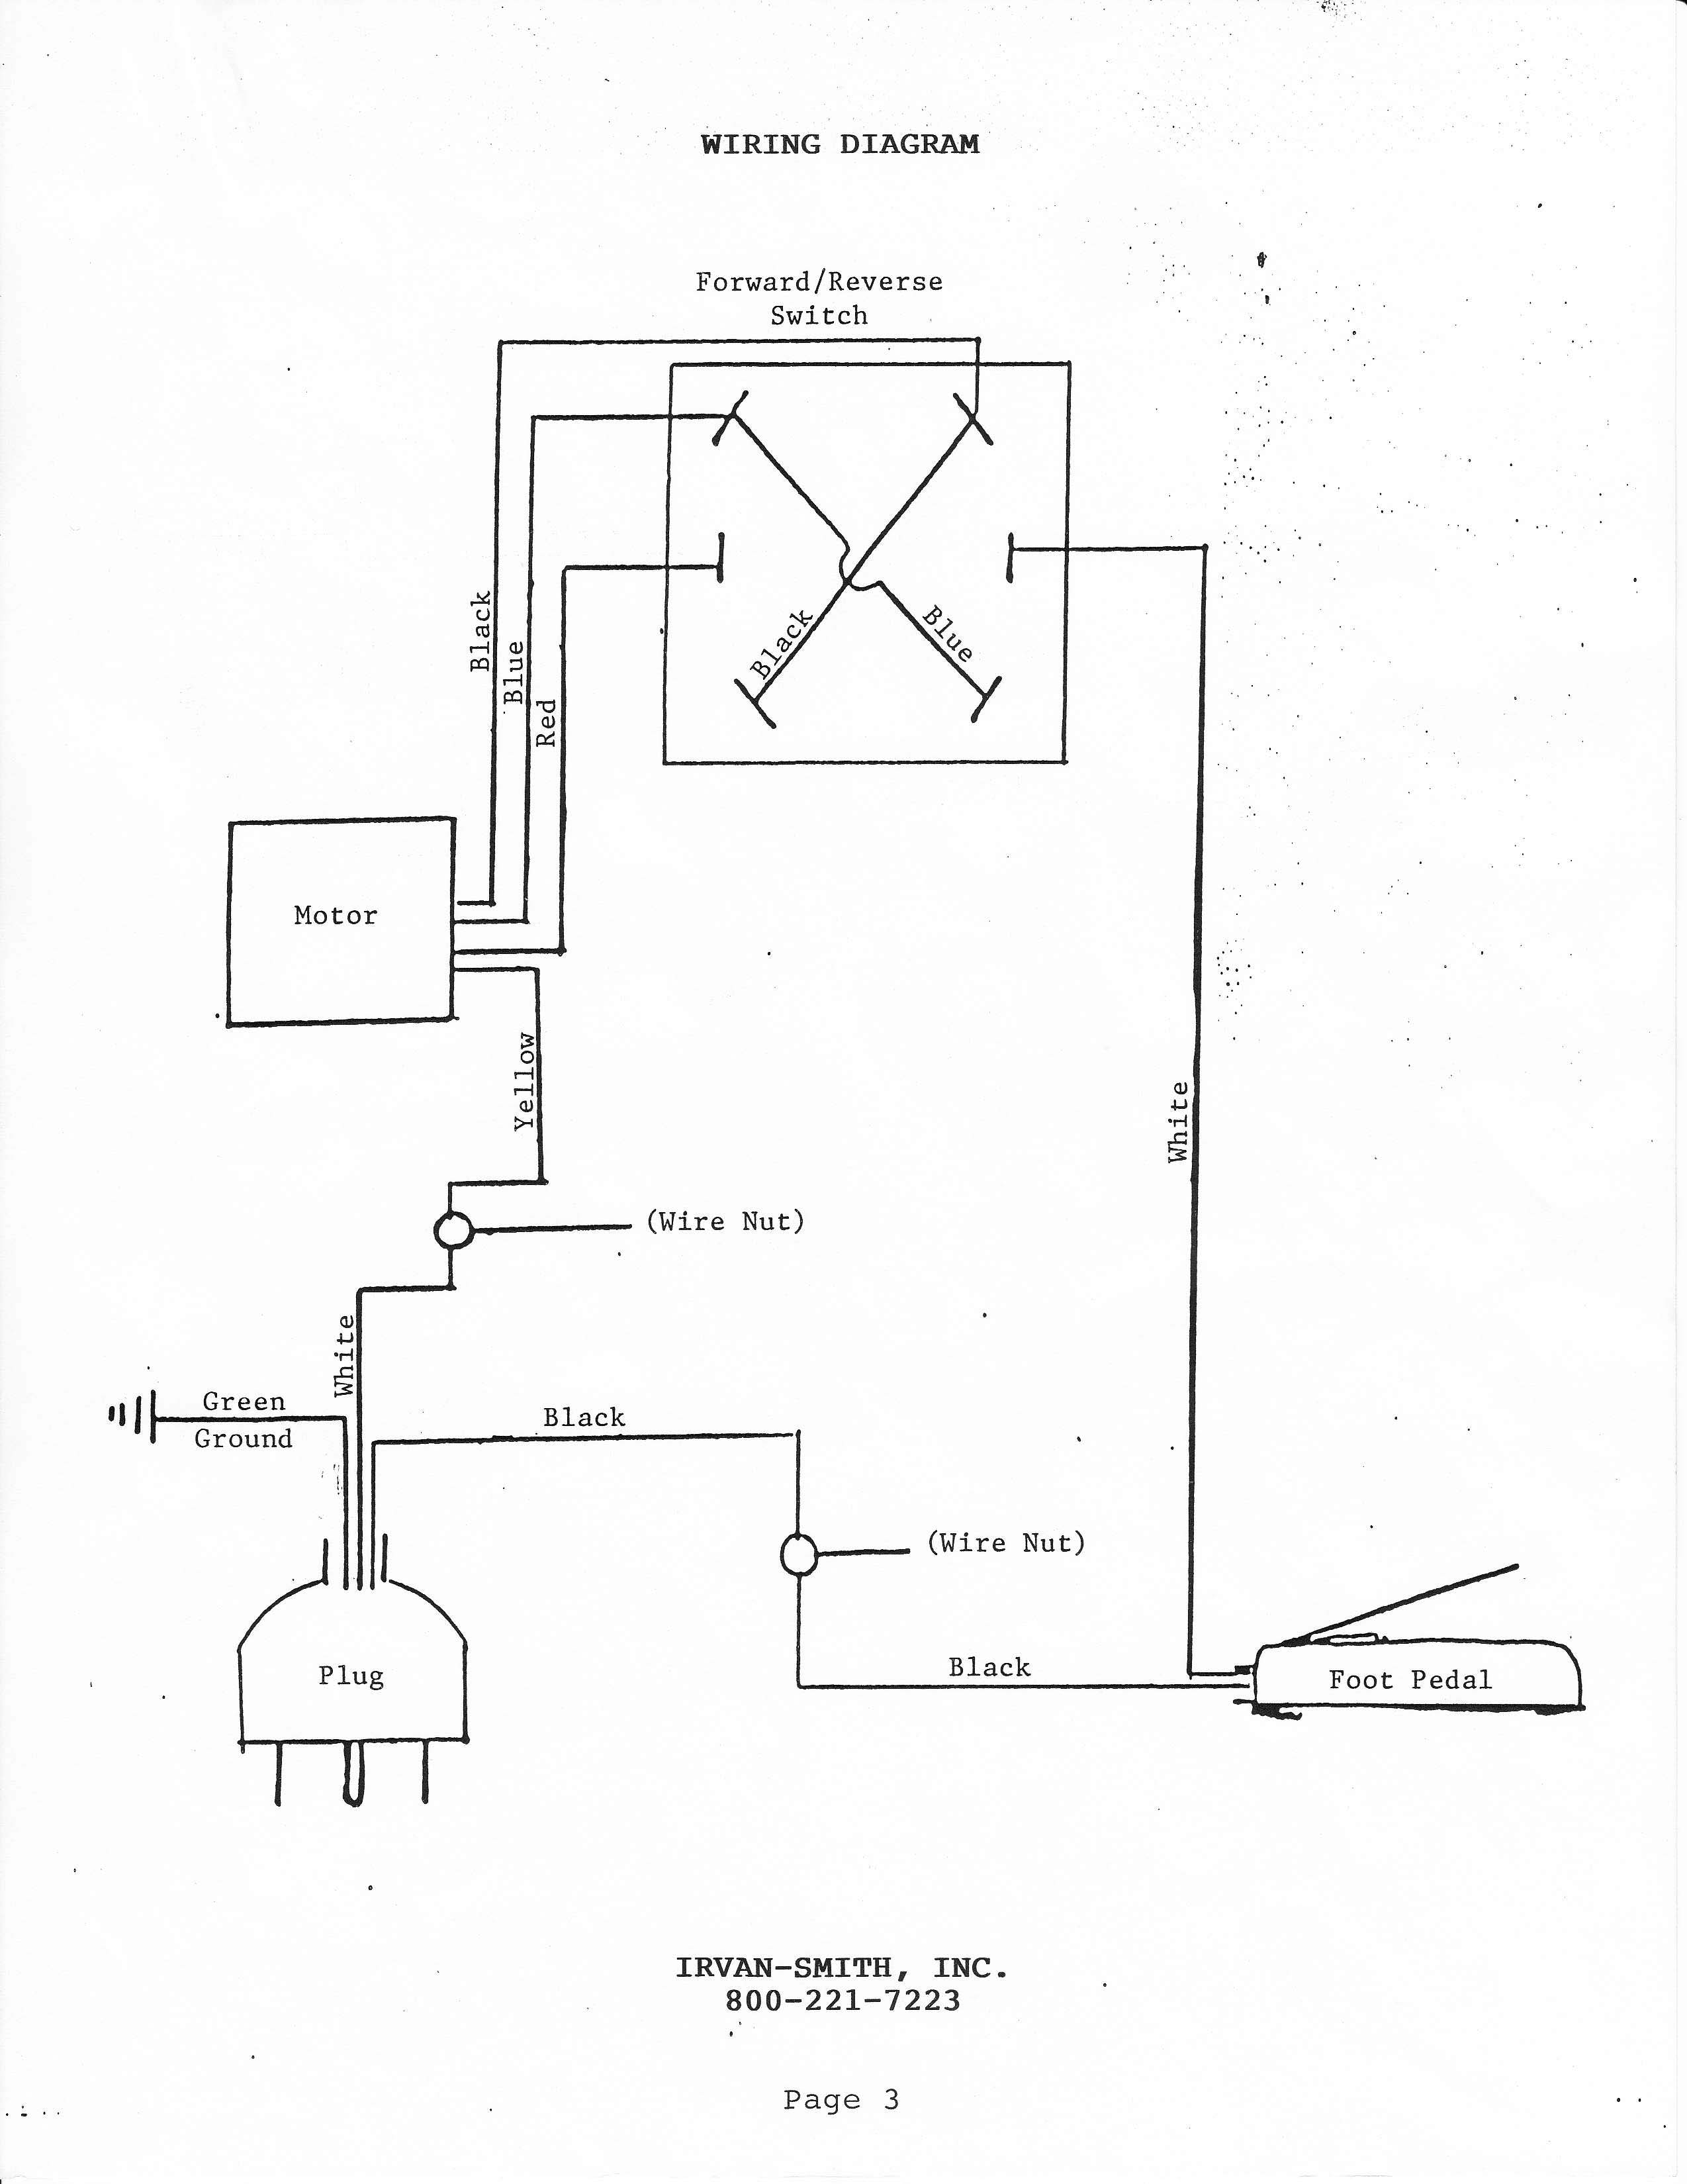 Irvan Smith Inc Is0 Mbr 110 Bead Roller Electric Wiring Diagram Ingersoll Rand More Pictures